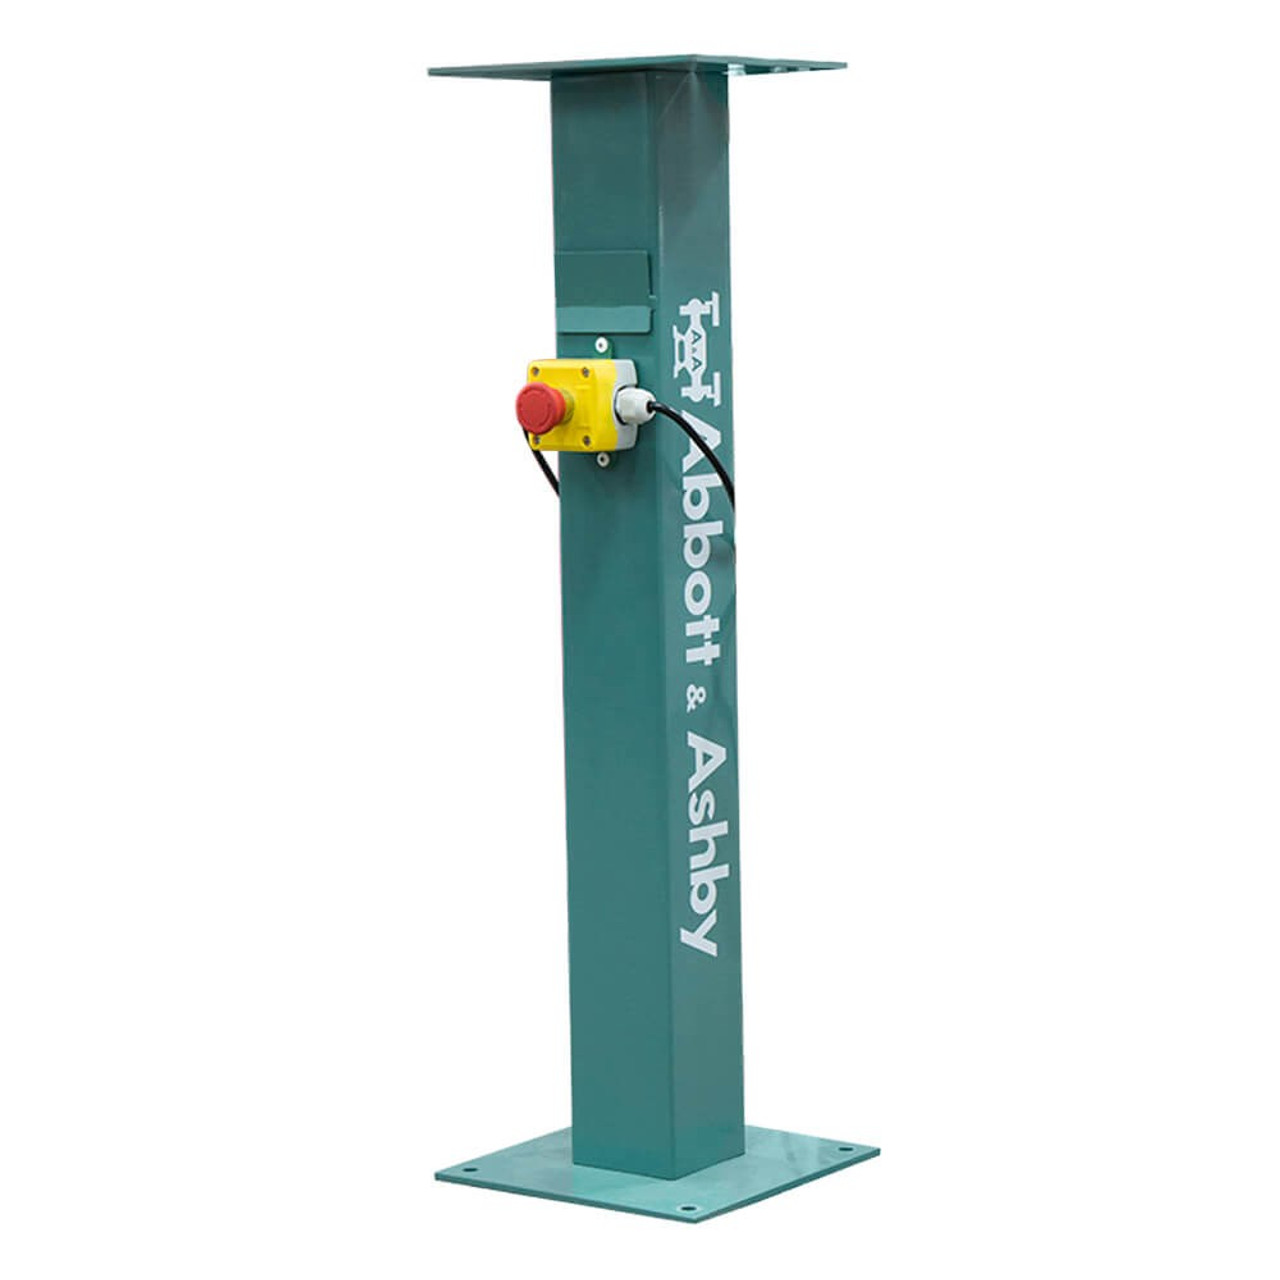 Bench grinder stand with stop button Abbott & Ashby